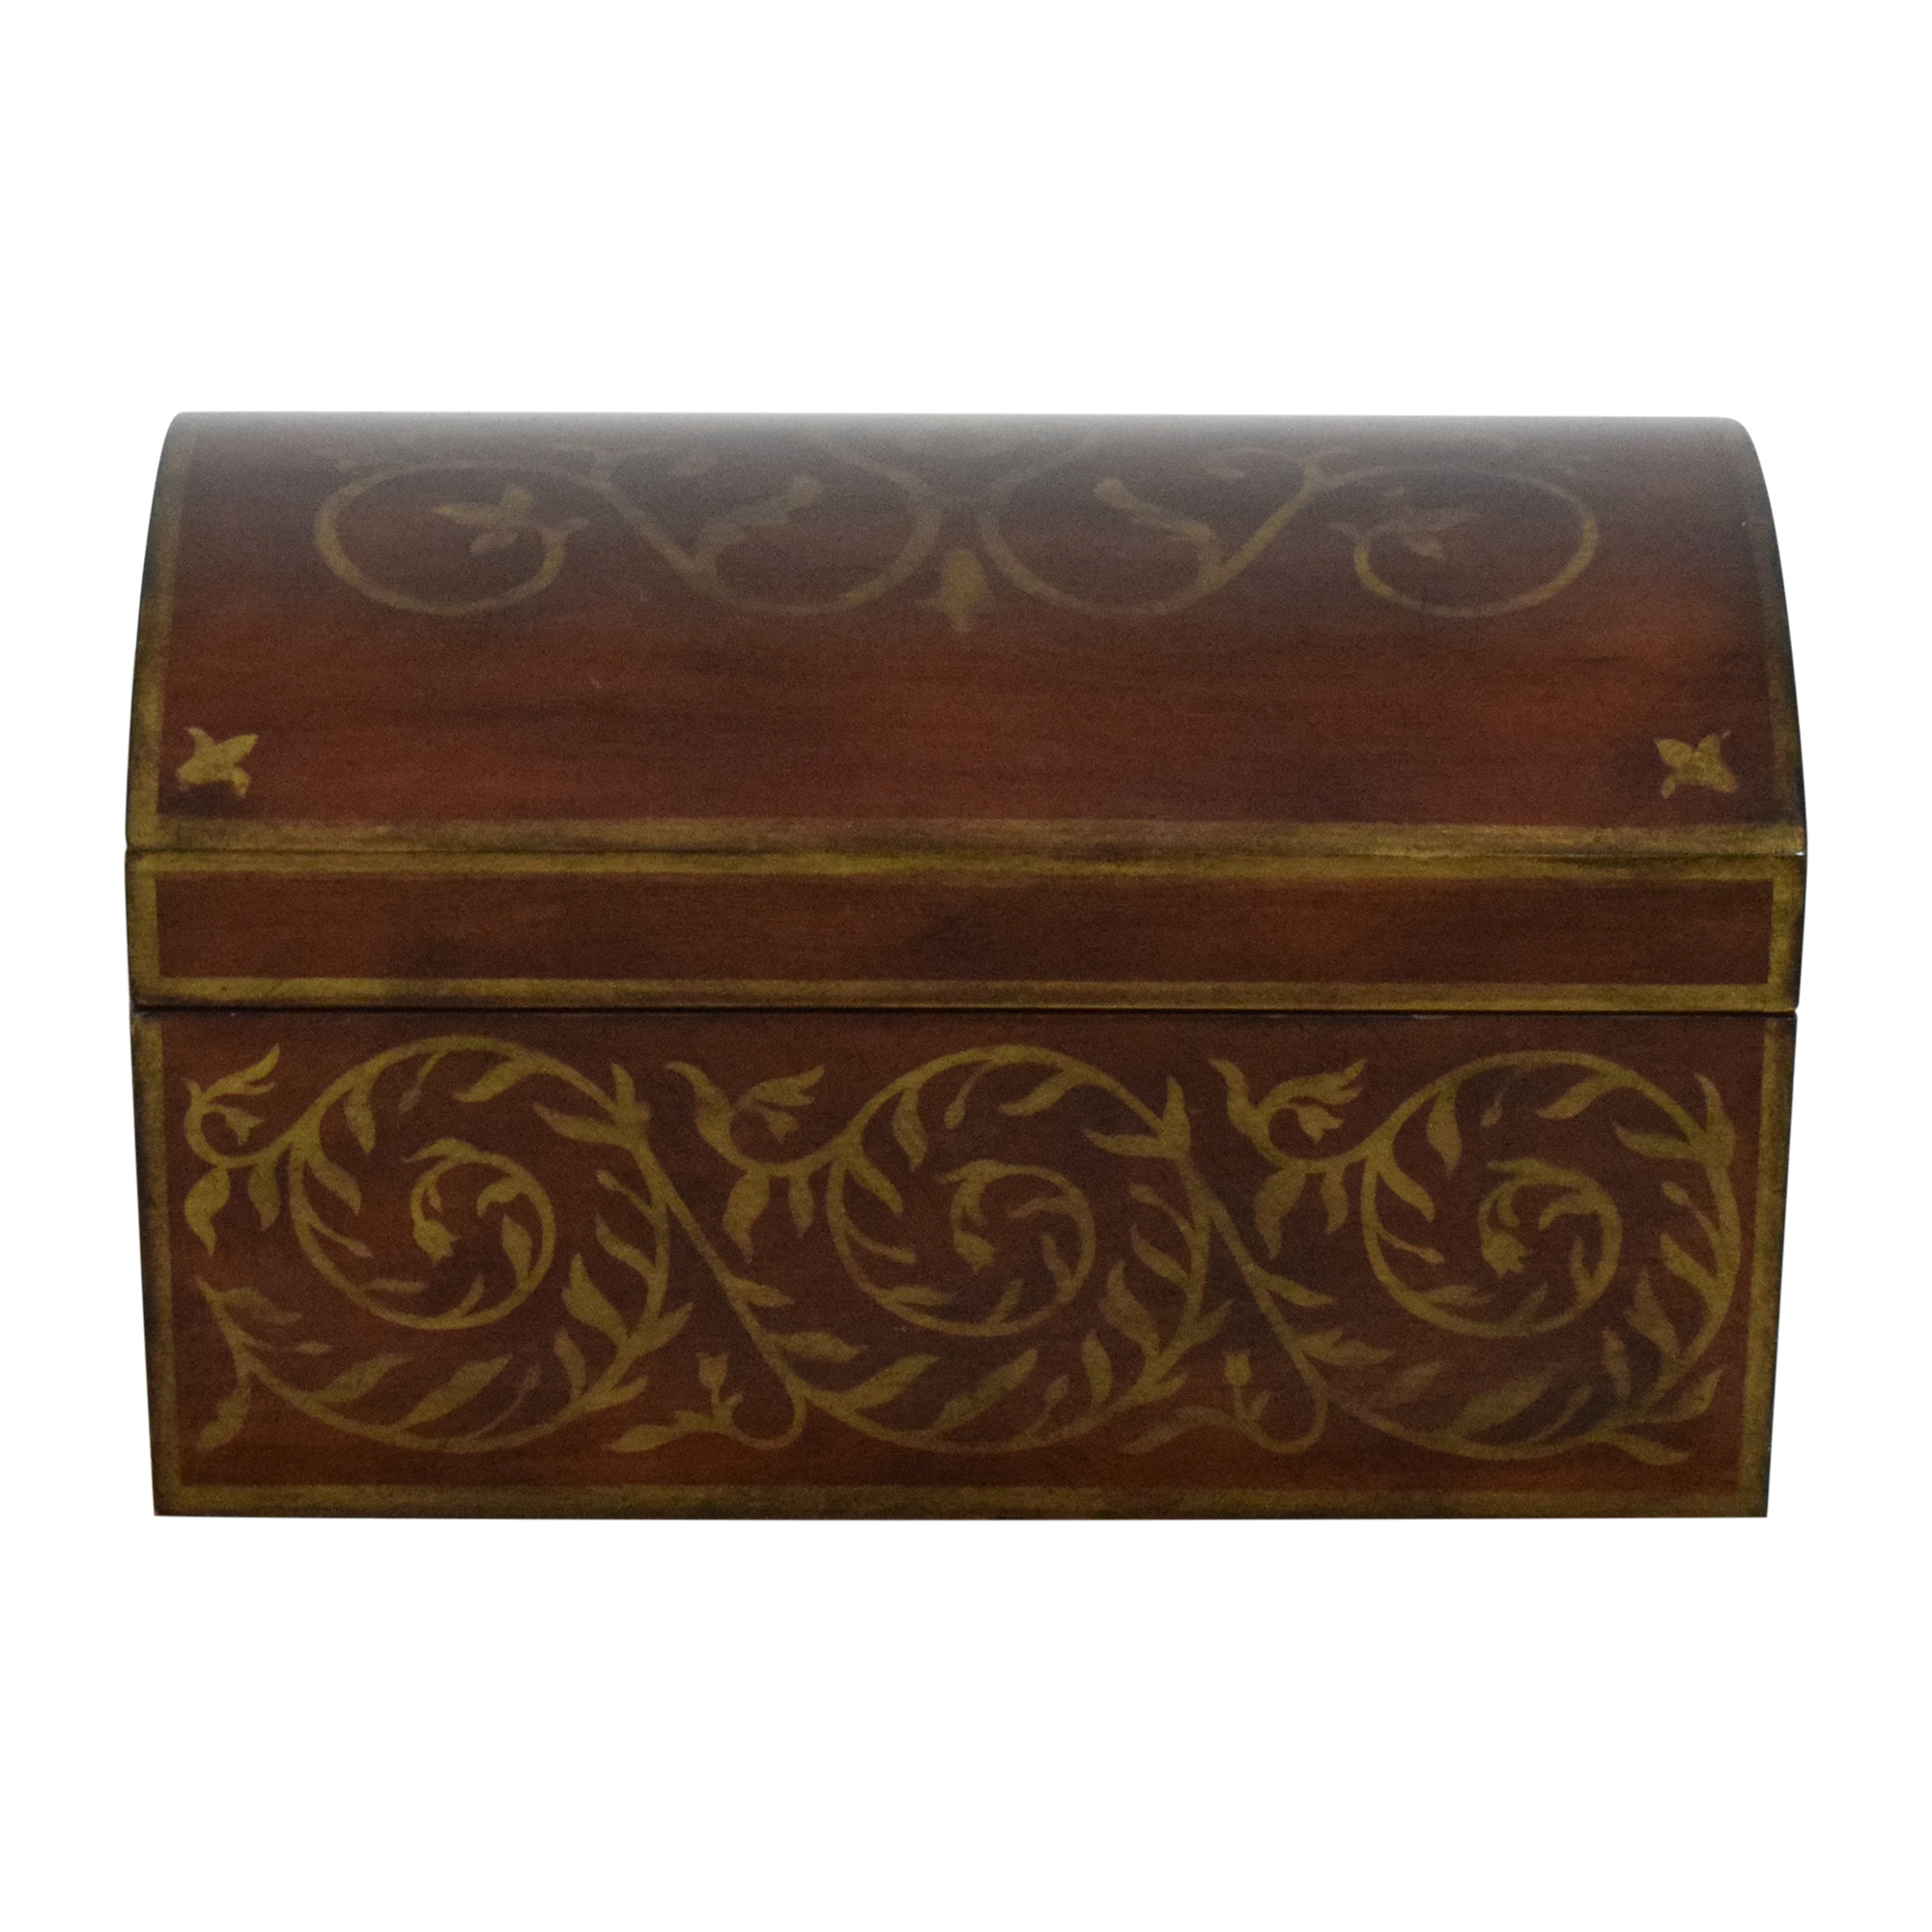 Ethan Allen Ethan Allen Dome Top Jewelry Box pa